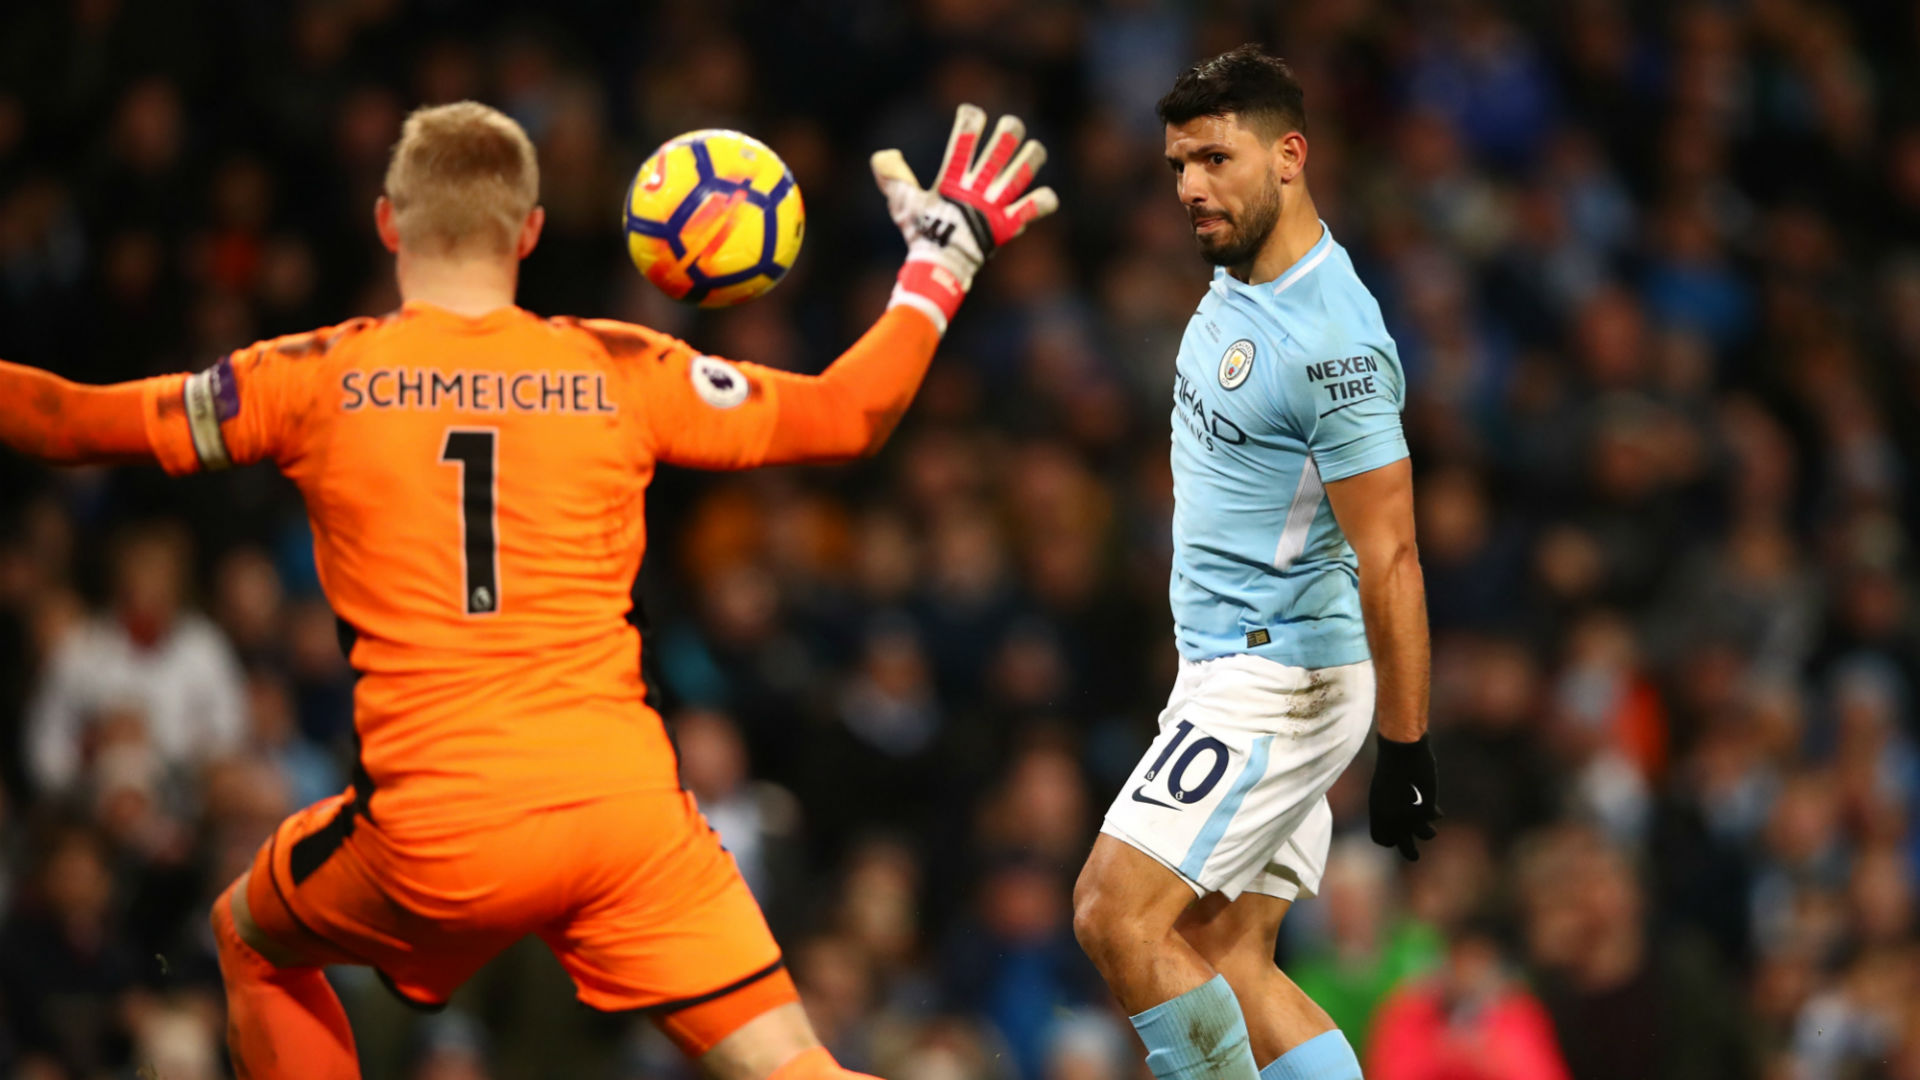 Leicester's Mahrez to miss Man City game